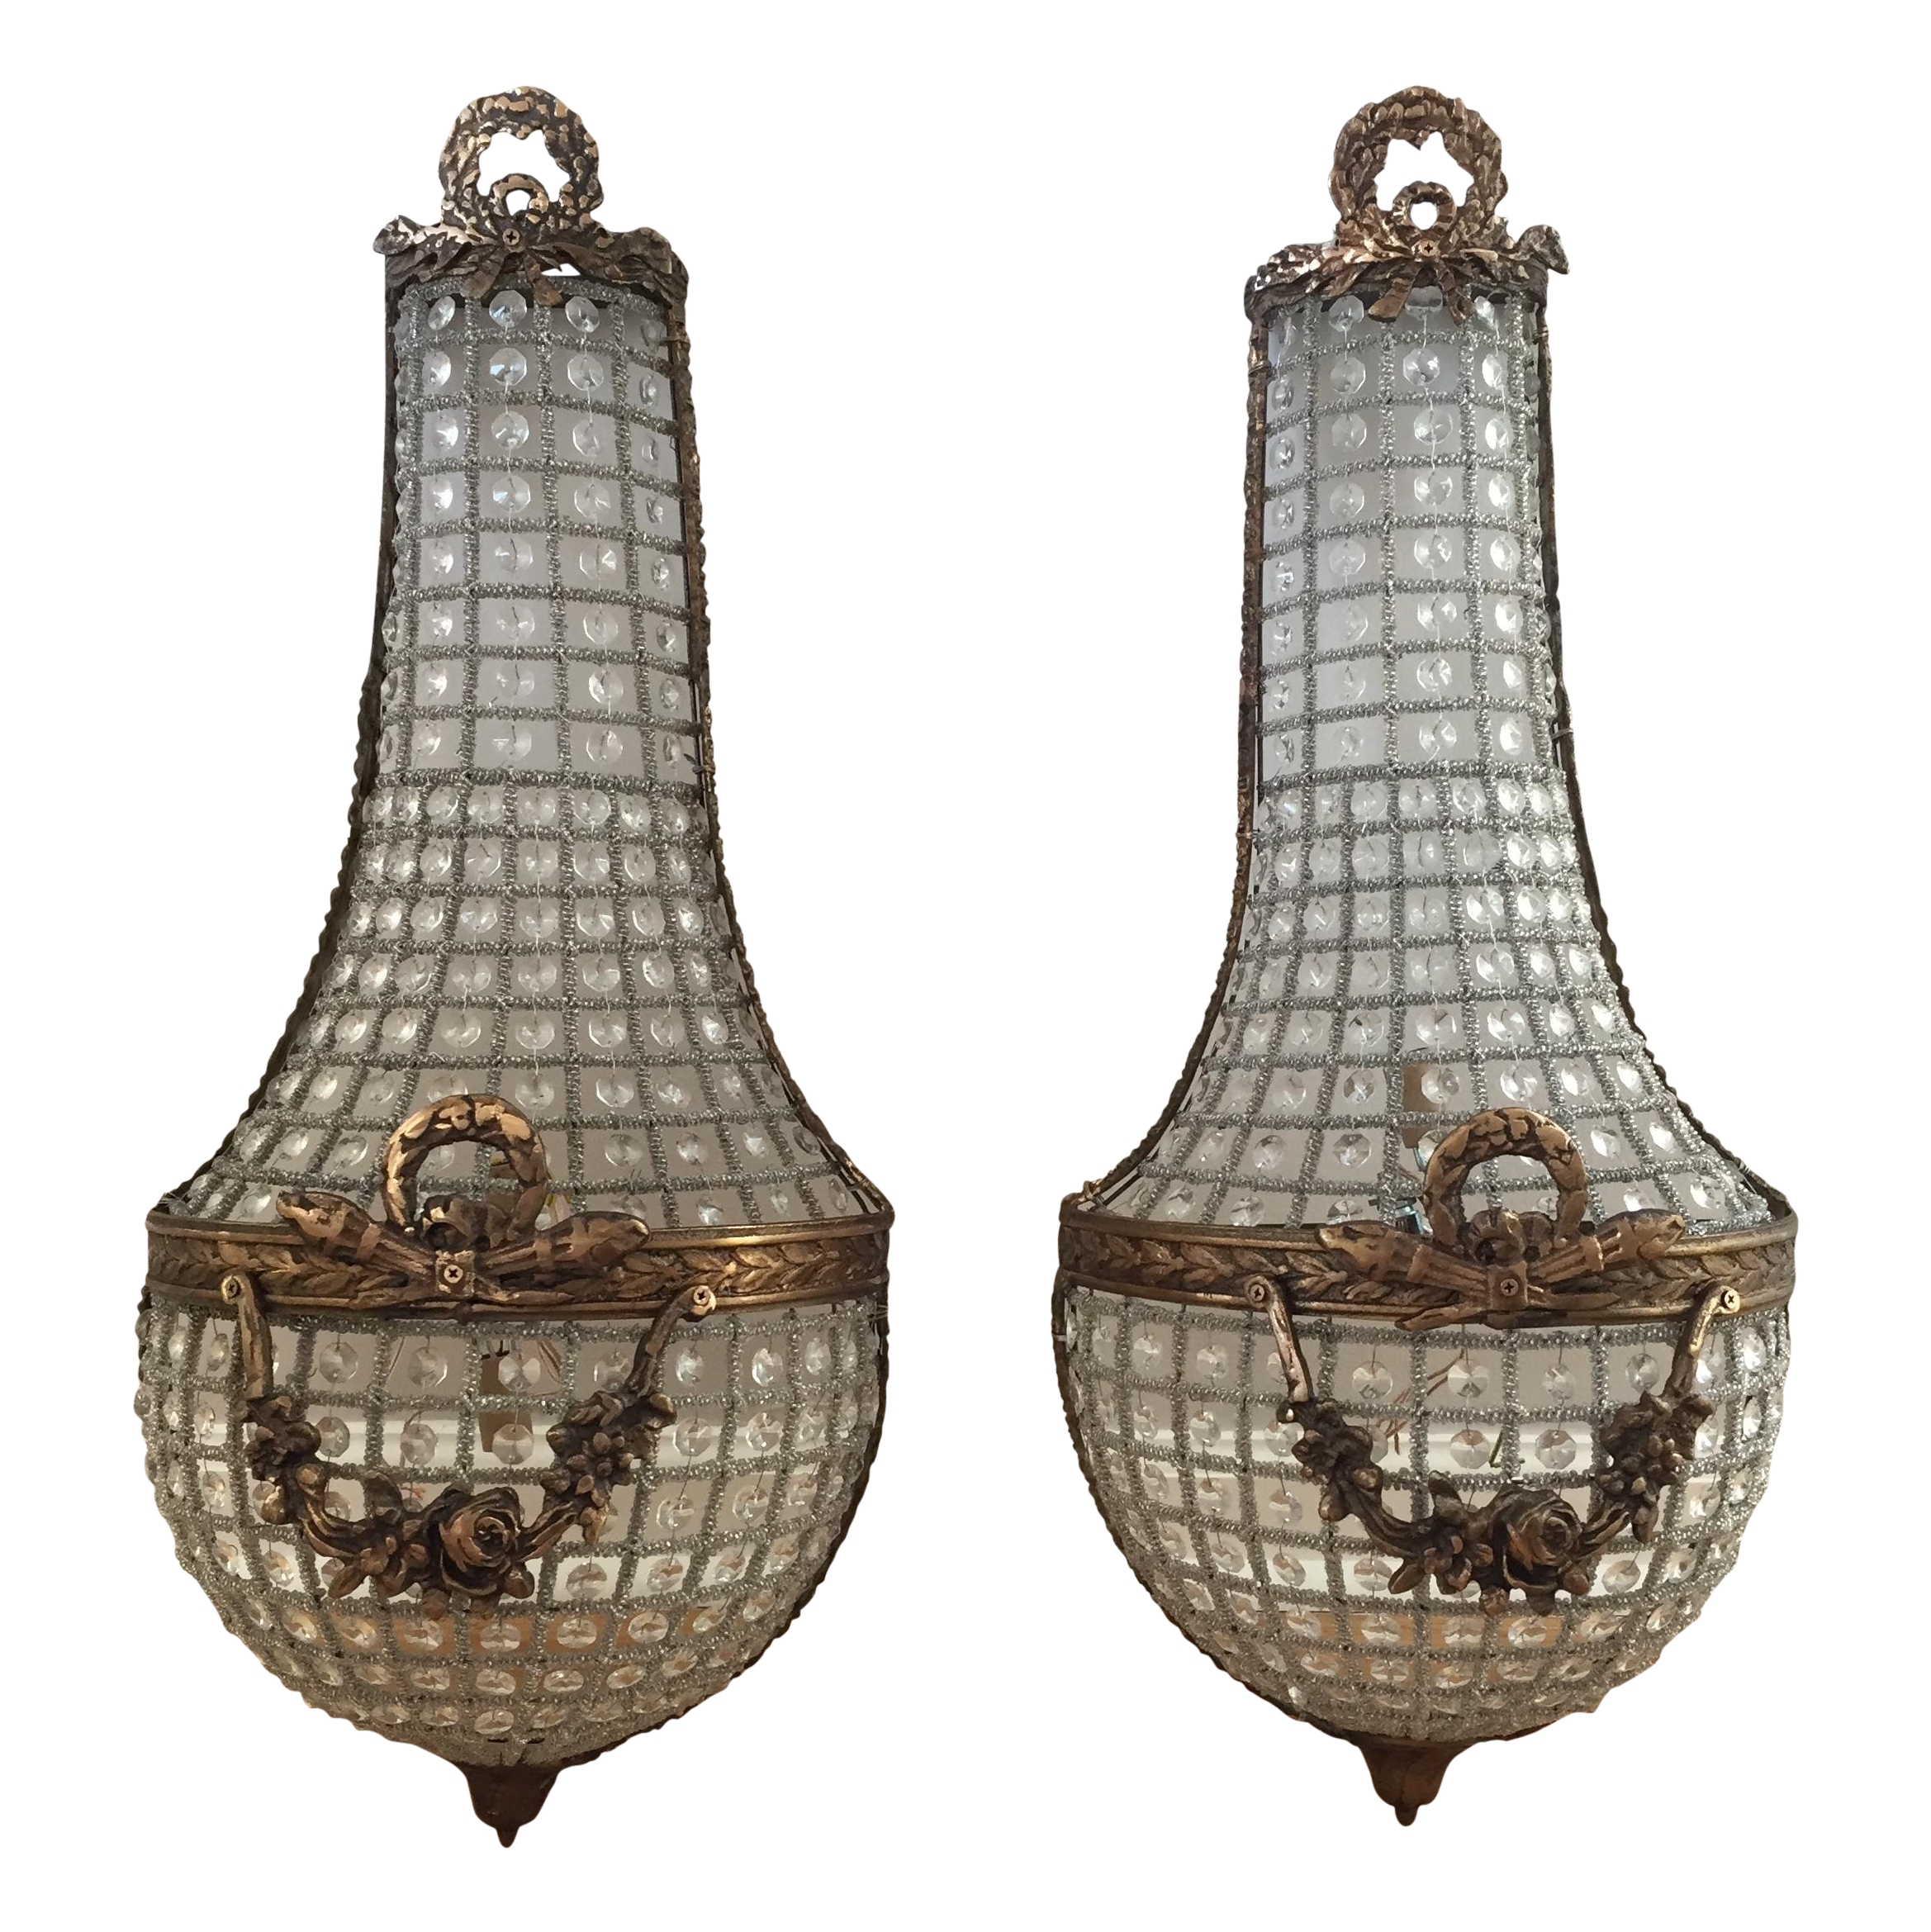 French Crystal Wall Sconces : French Basket Style Crystal Wall Sconces - a Pair Chairish